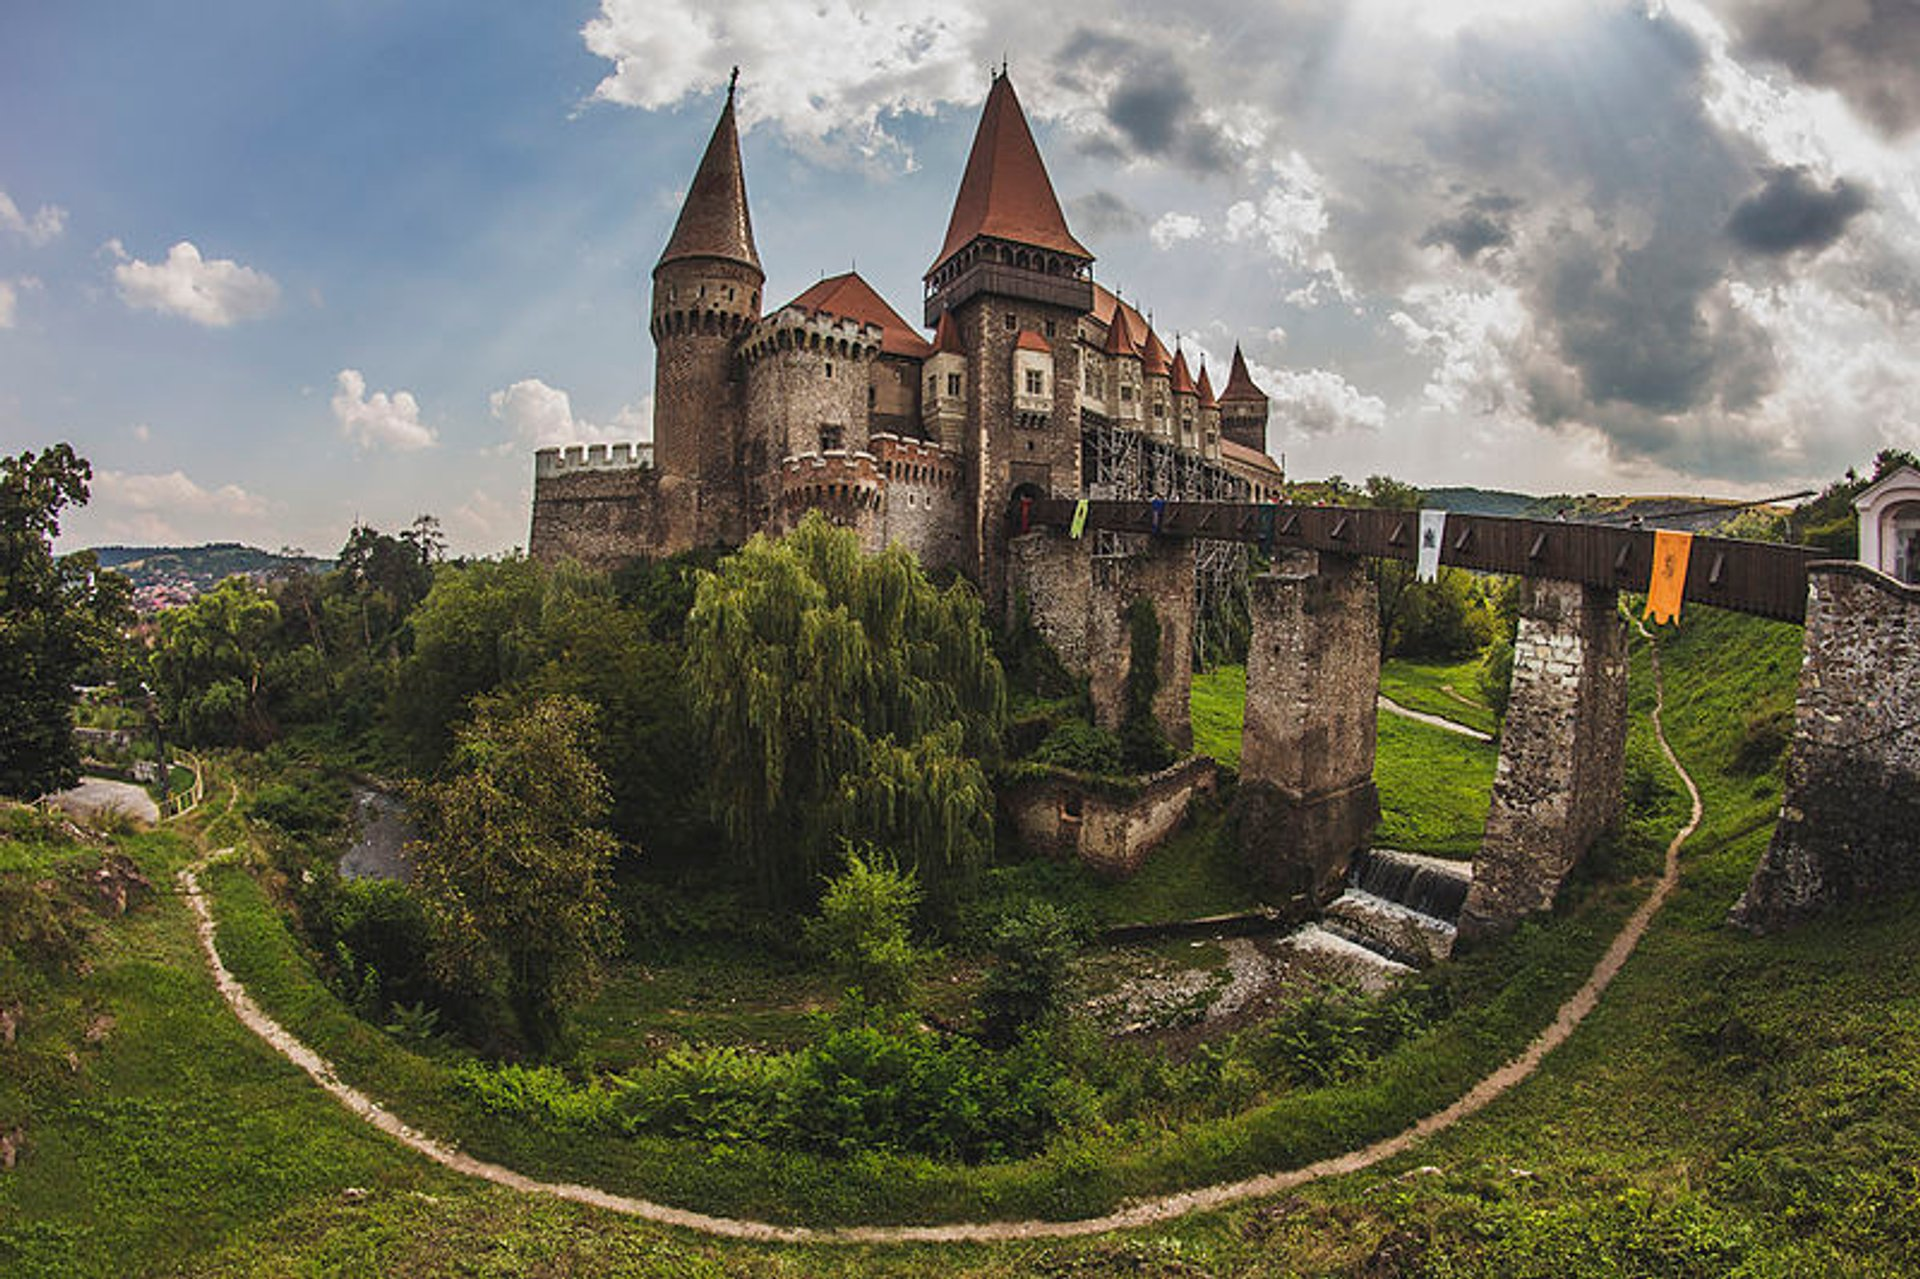 Corvin Castle (Castelul Corvinilor) in Romania 2020 - Best Time